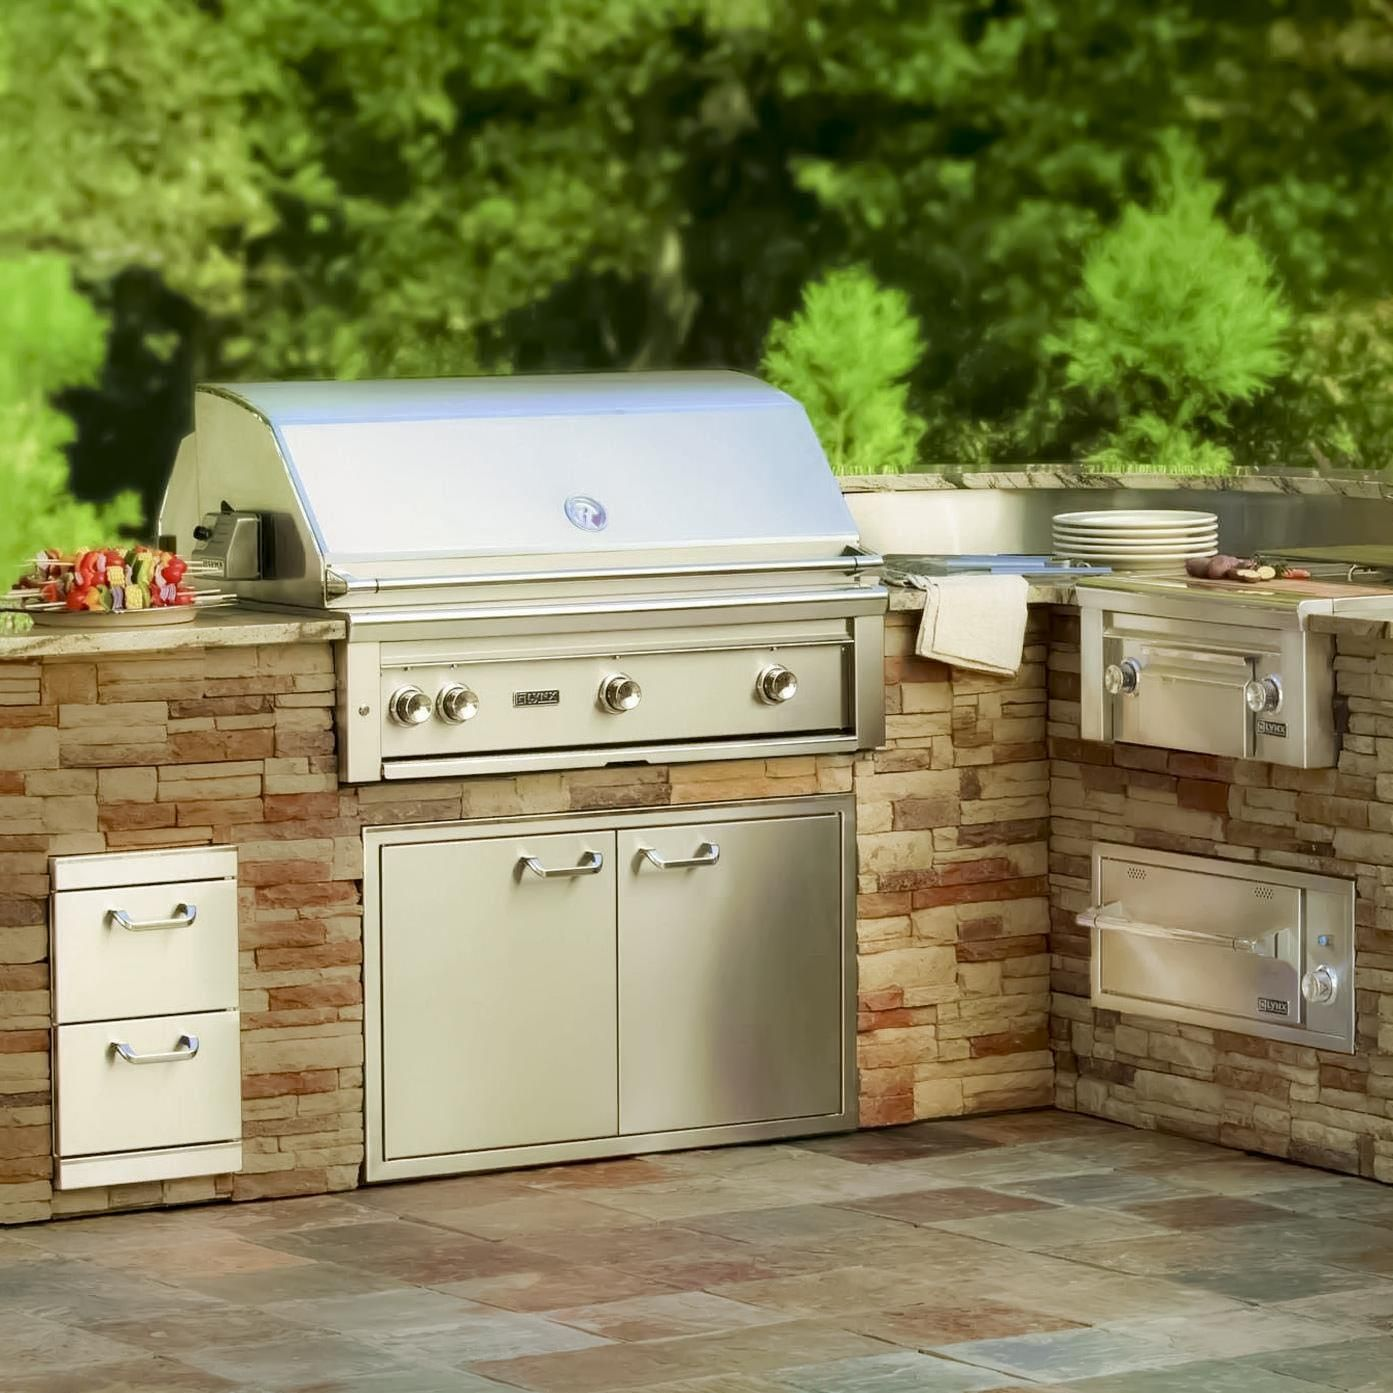 Lynx Professional 36 Inch Built In Propane Gas Grill With